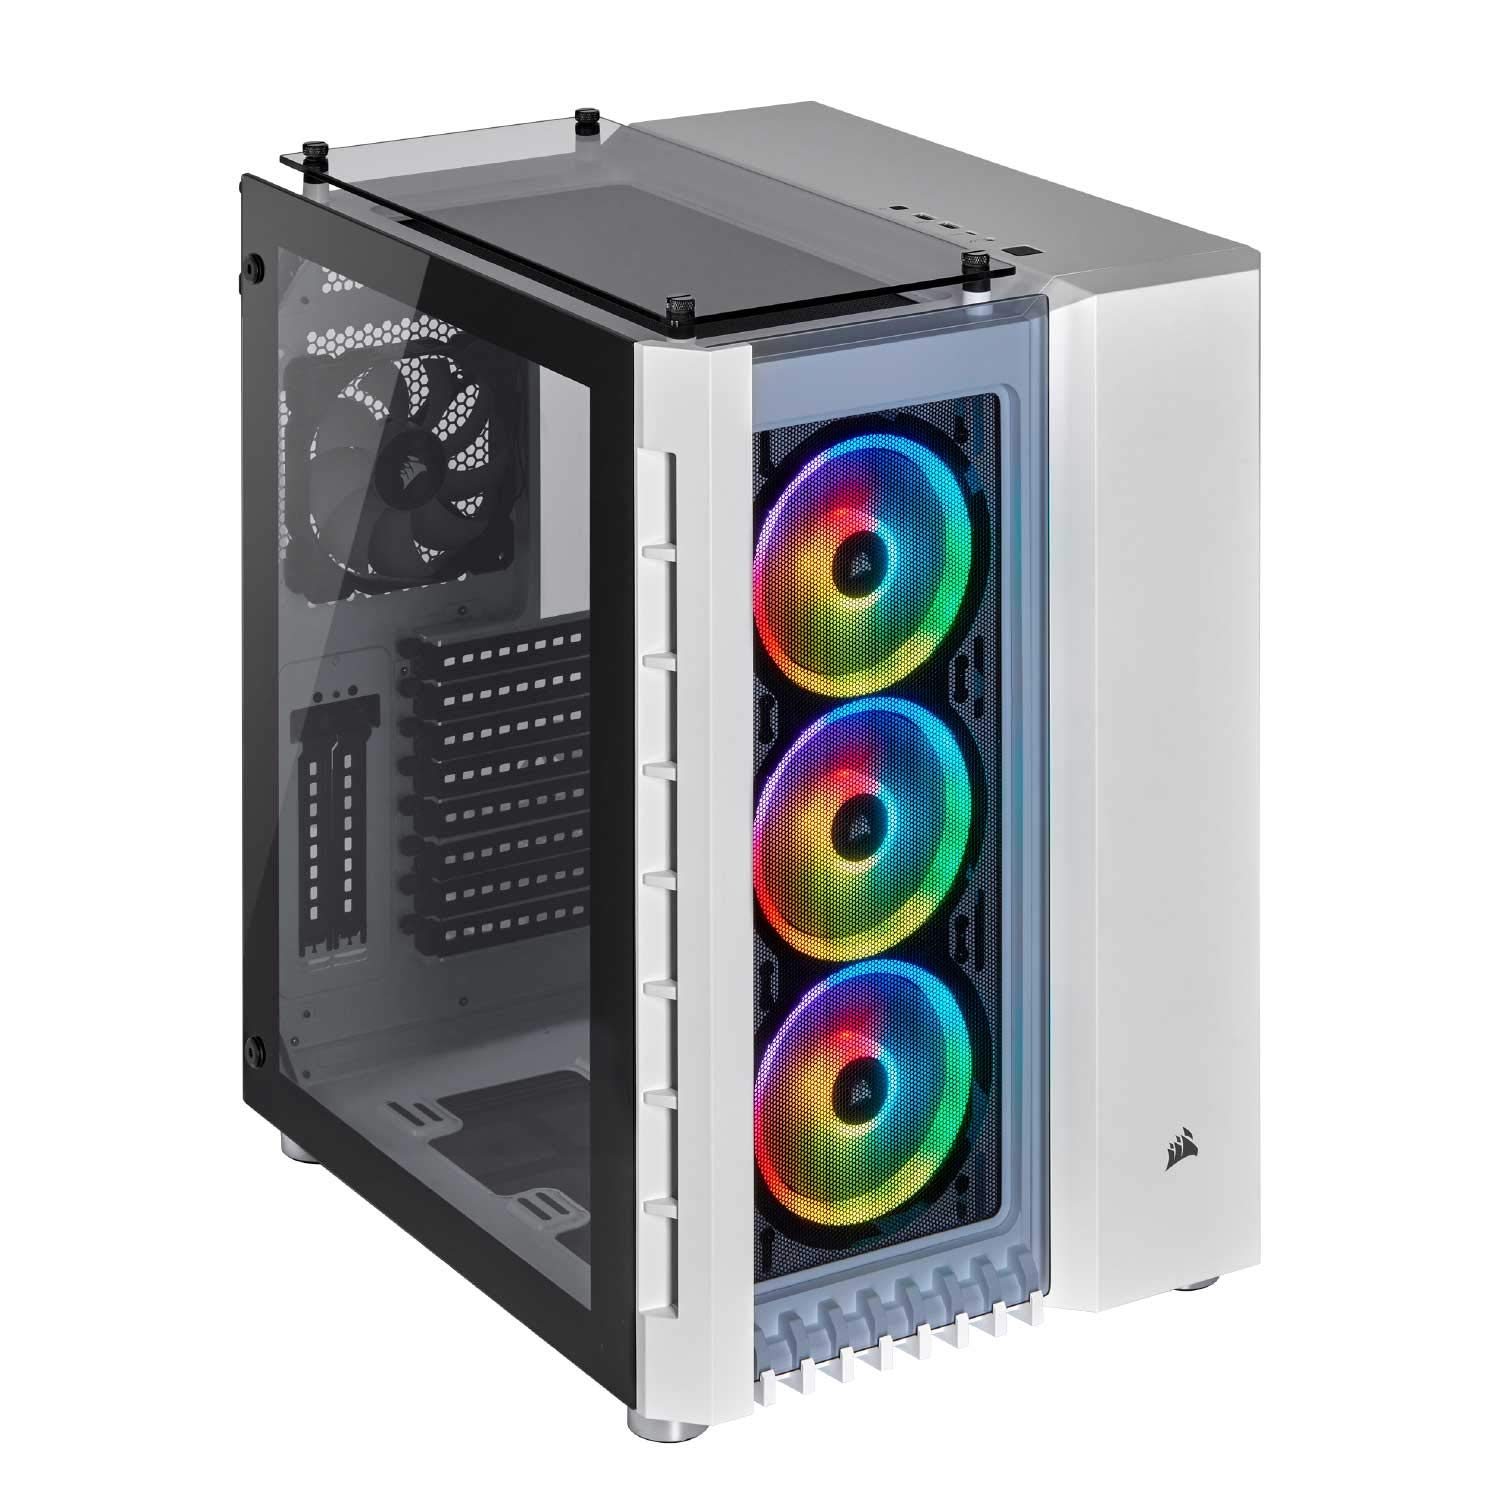 CORSAIR Crystal Series 680X RGB High Airflow Tempered Glass ATX Smart Case, White